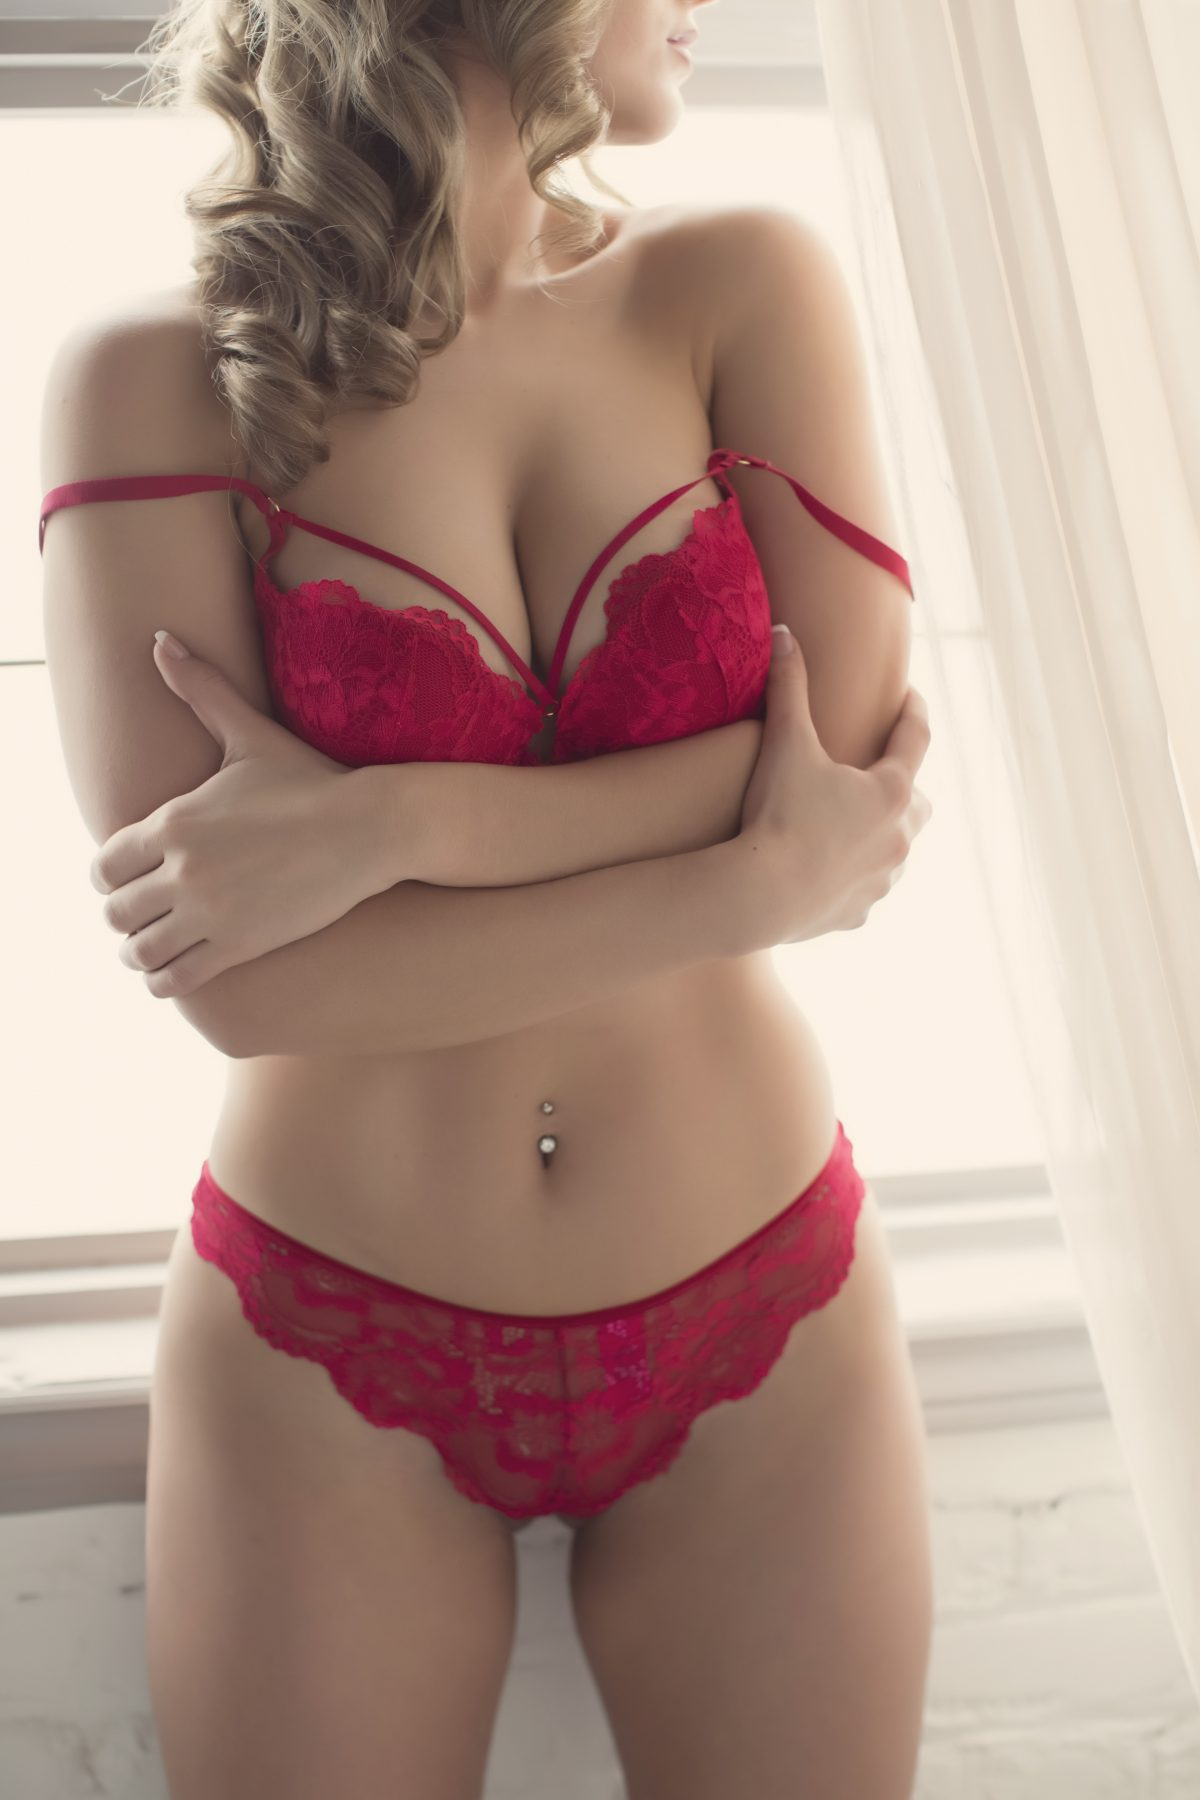 Toronto escorts companion upscale Cameron Interests Non-smoking Age Young Figure Slender Breasts Natural Hair Blonde Ethnicity European Tattoos Small Arrival